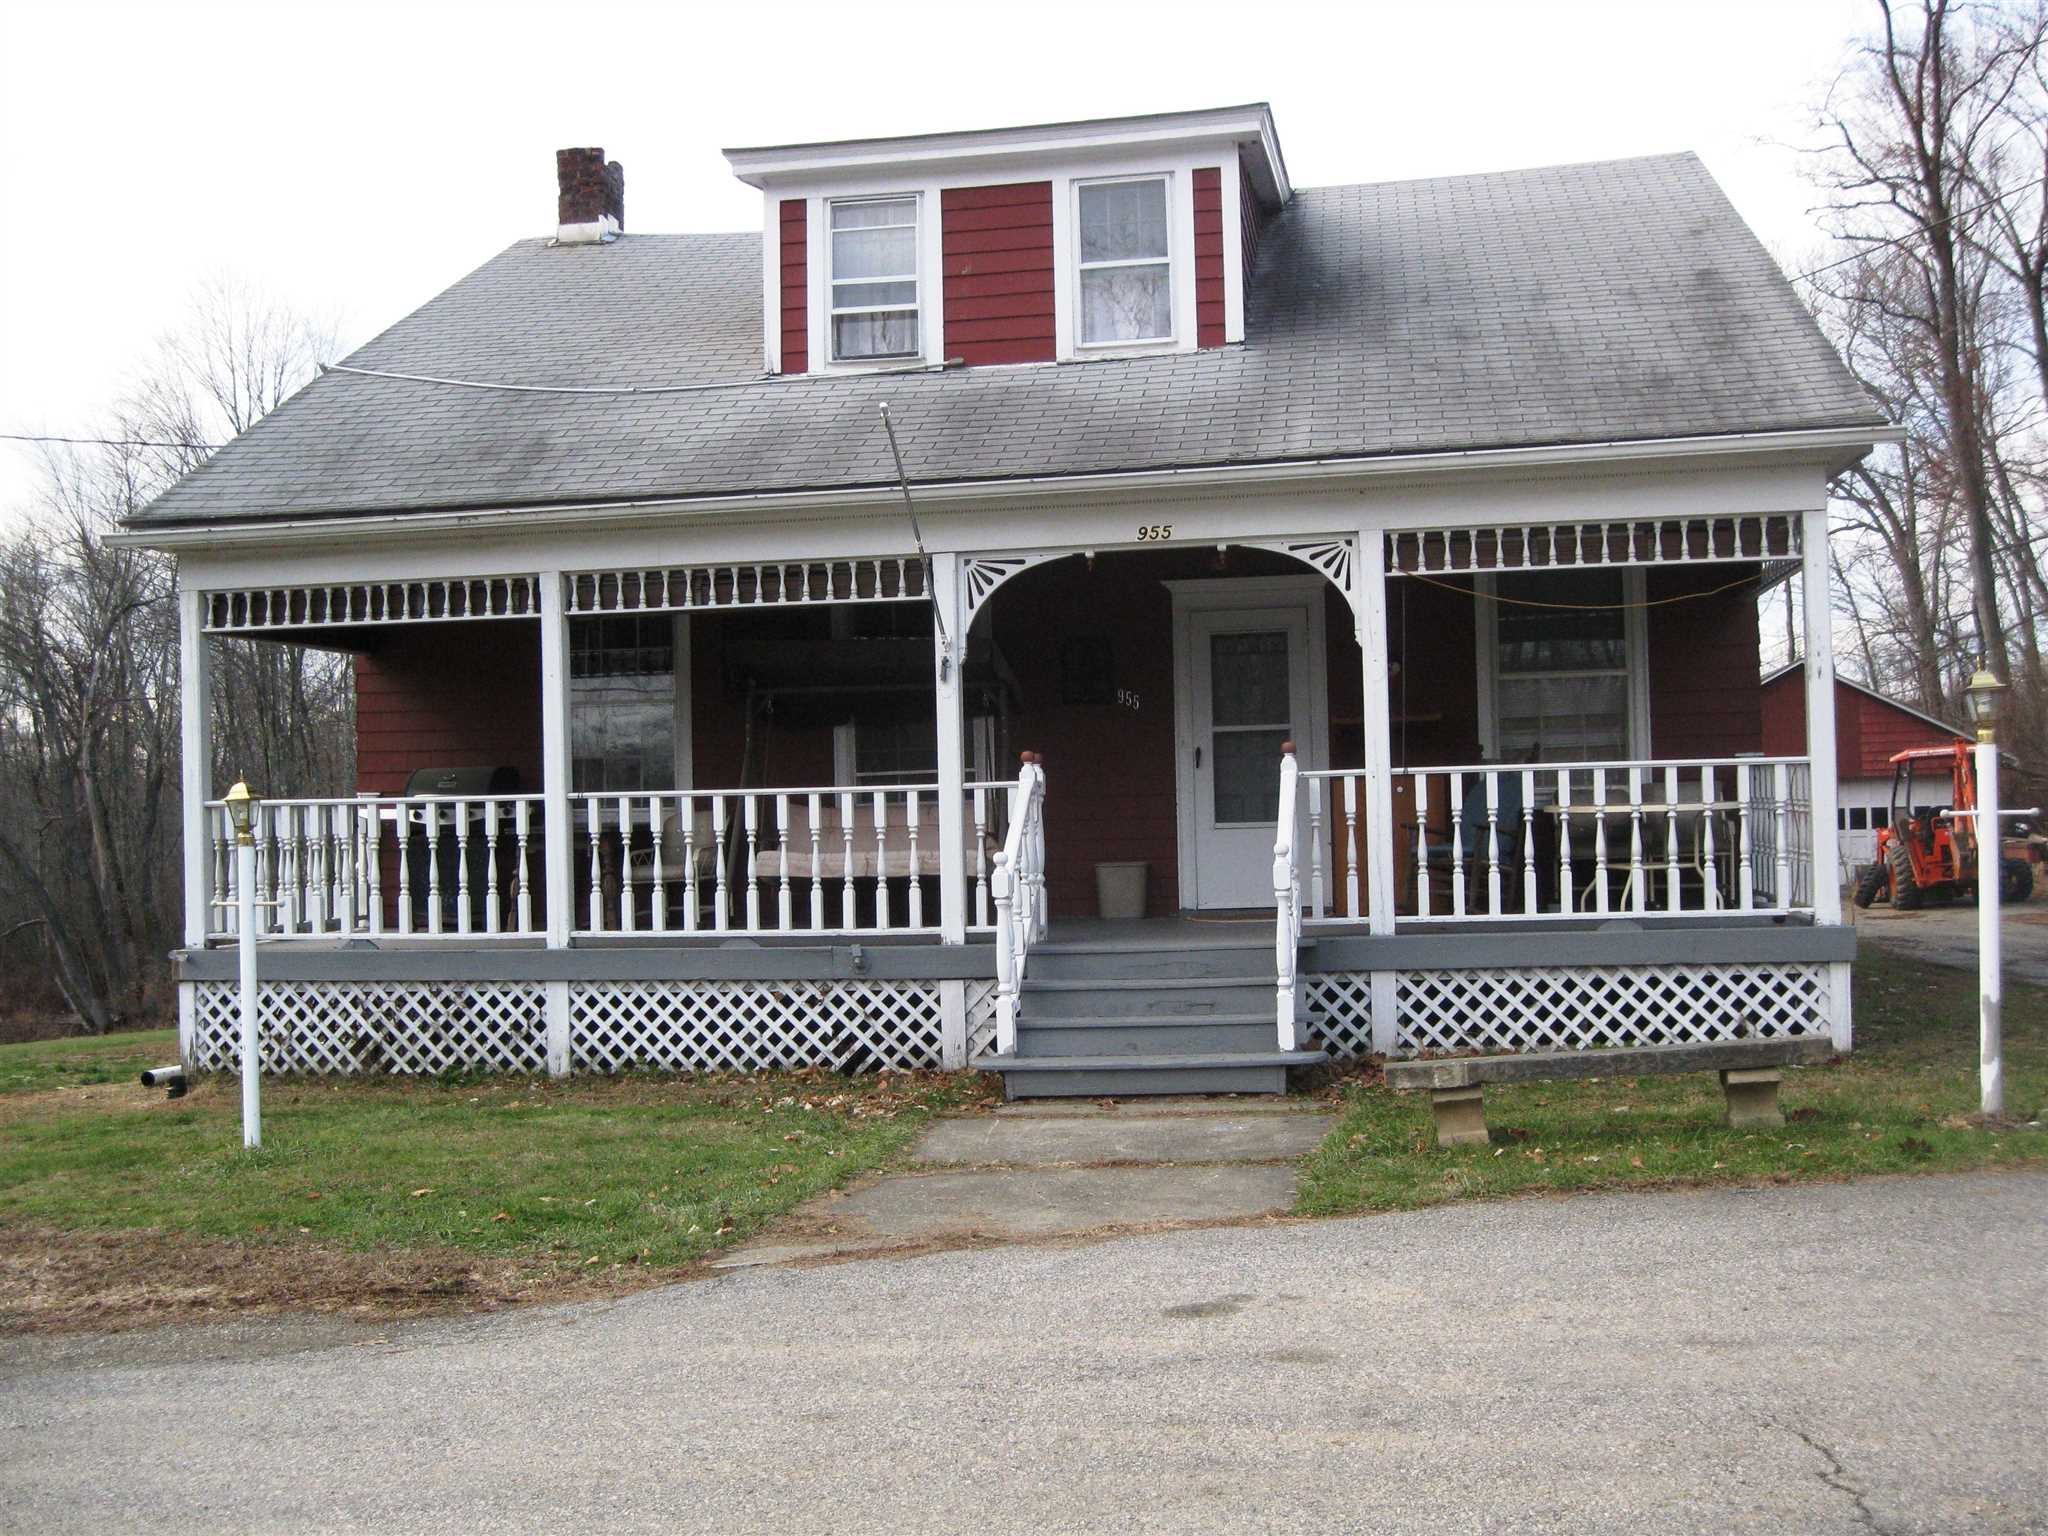 Single Family Home for Sale at 955 ROUTE 82 955 ROUTE 82 East Fishkill, New York 12533 United States